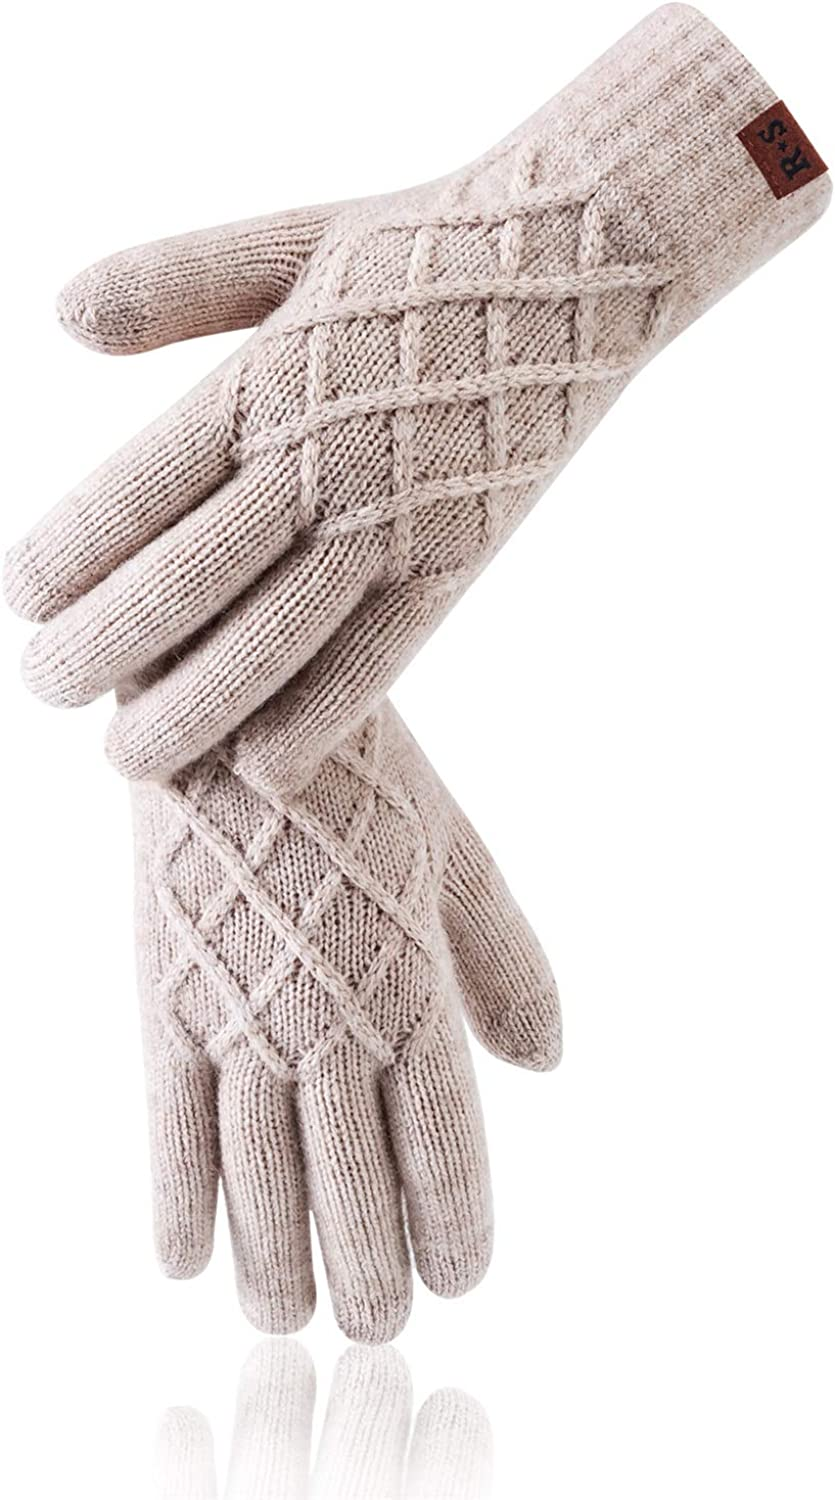 Reach Star Winter Womens Gloves Elastic Breathable Warm Gloves for Texting Driving